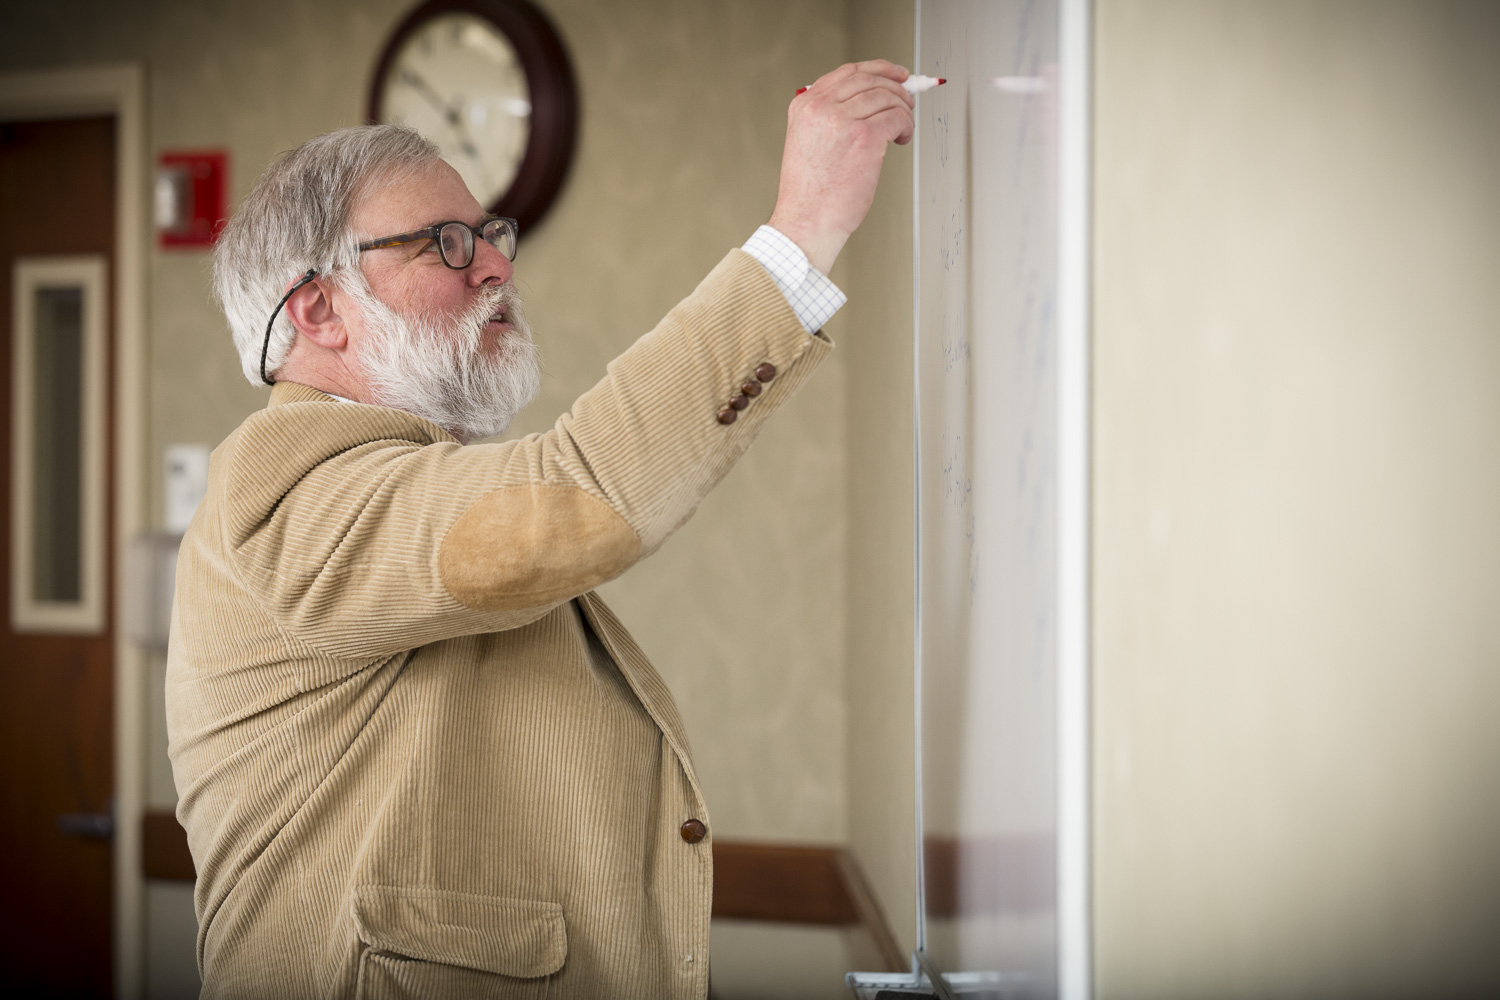 Business law professor teaching at the New England Law | Boston business law center.